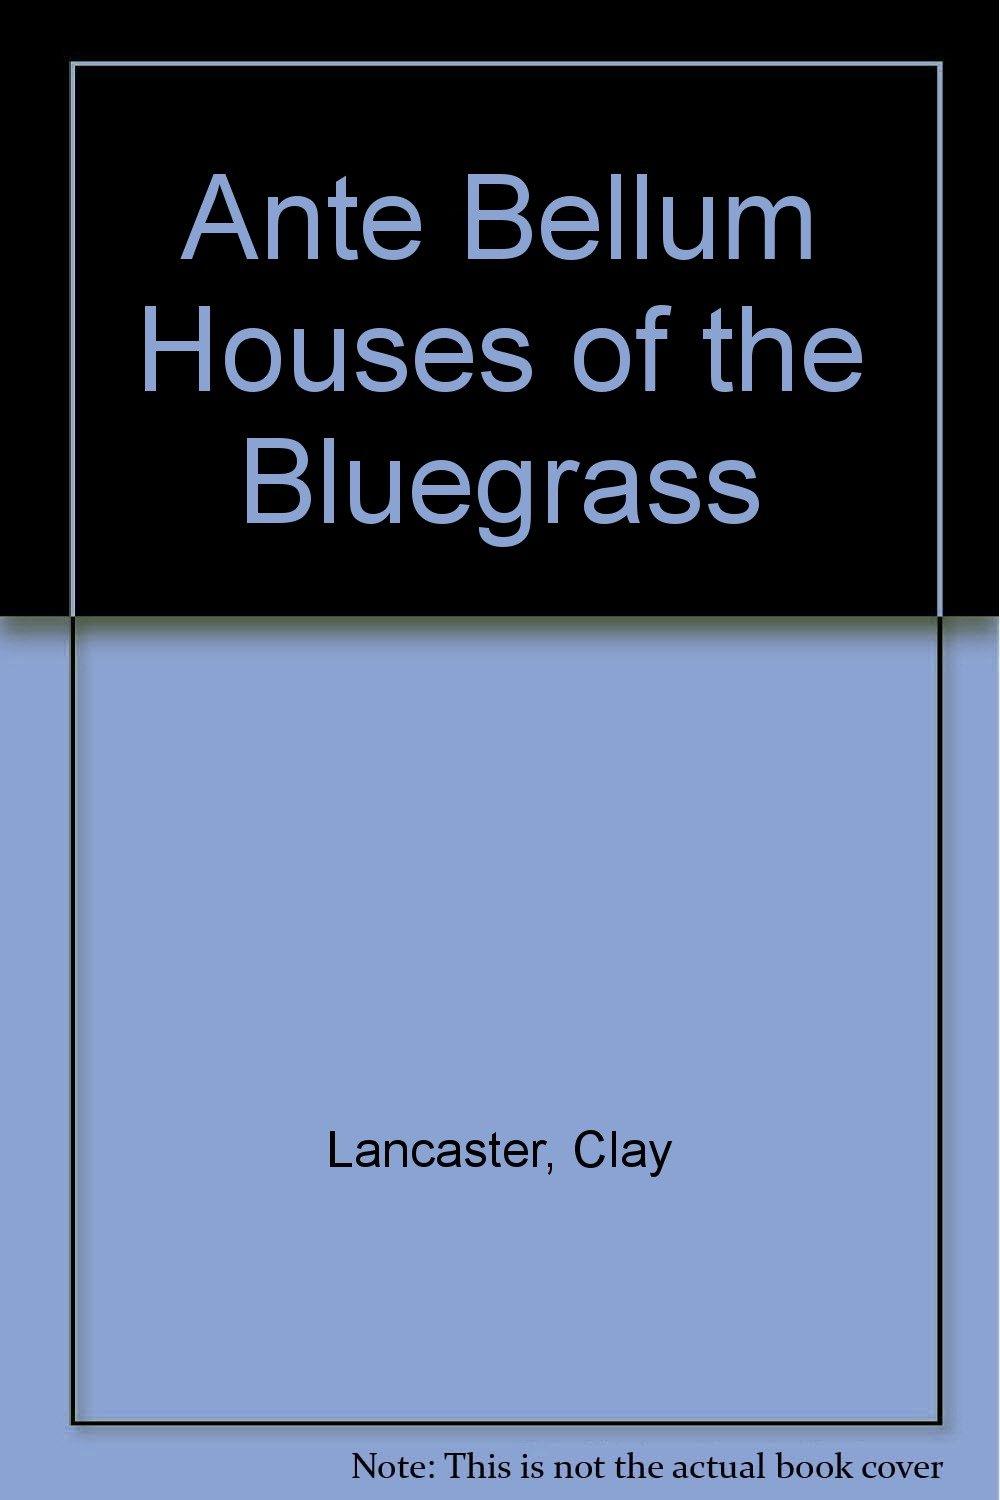 Ante Bellum Houses of the Bluegrass